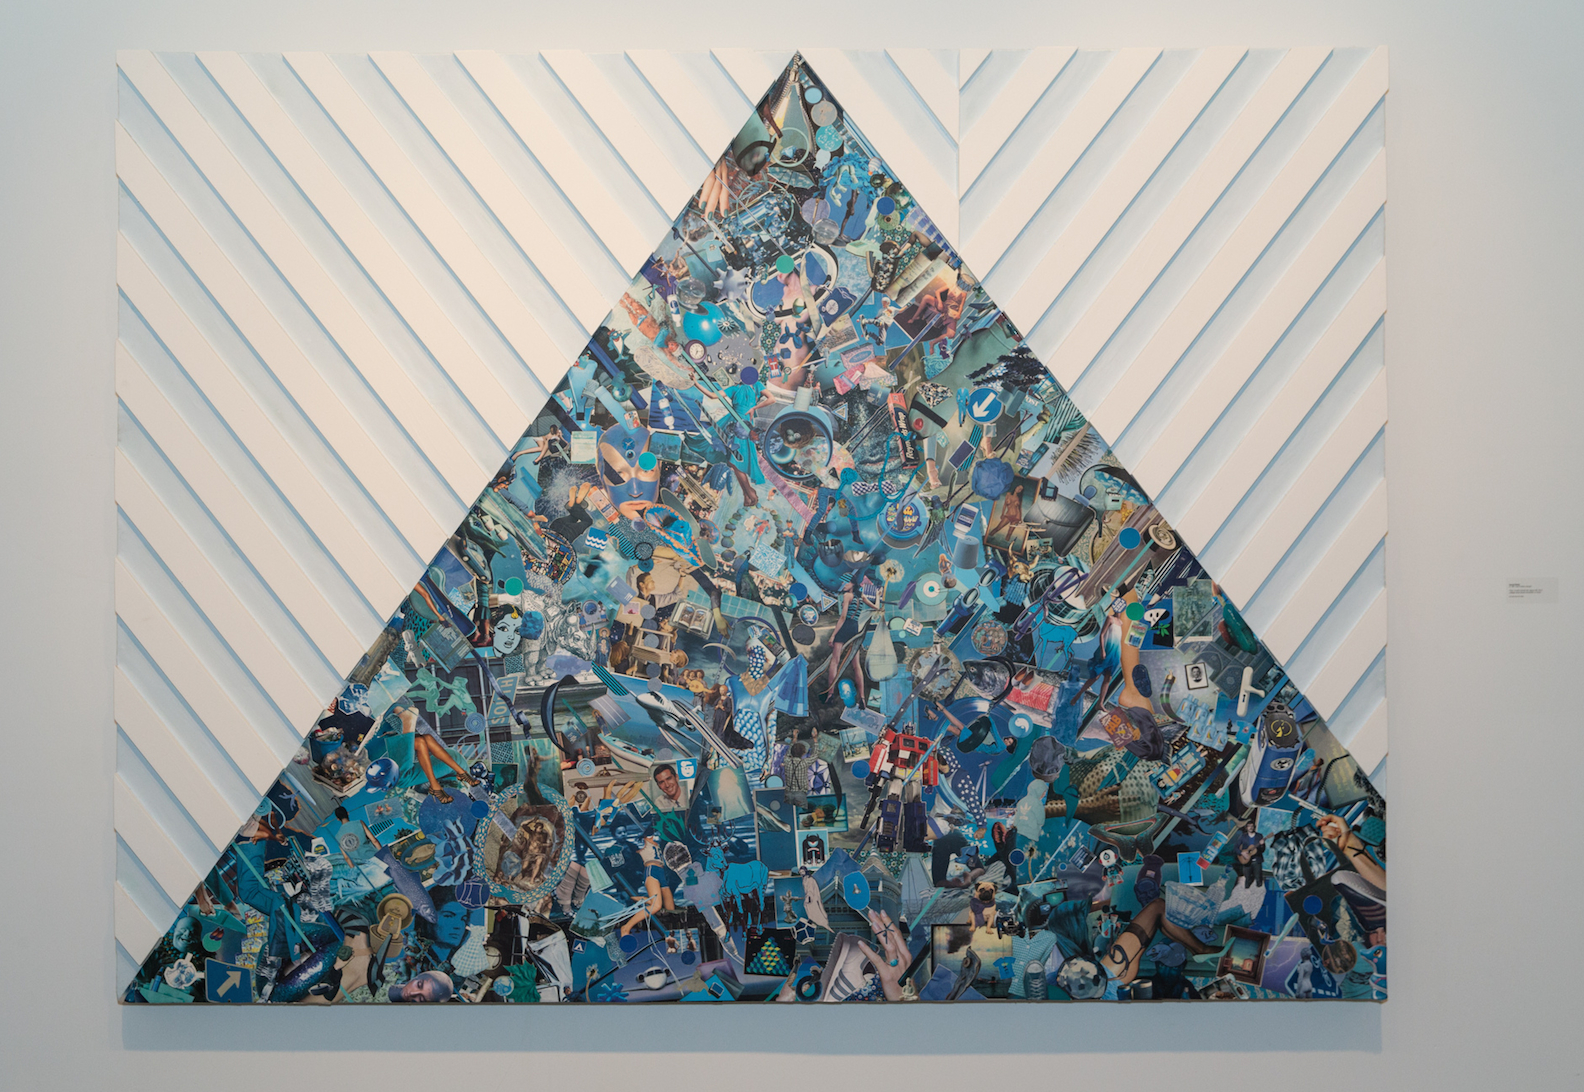 FullCRUMB (azure die agony all), 2013, wood wax latex collage on wood, 74x100""